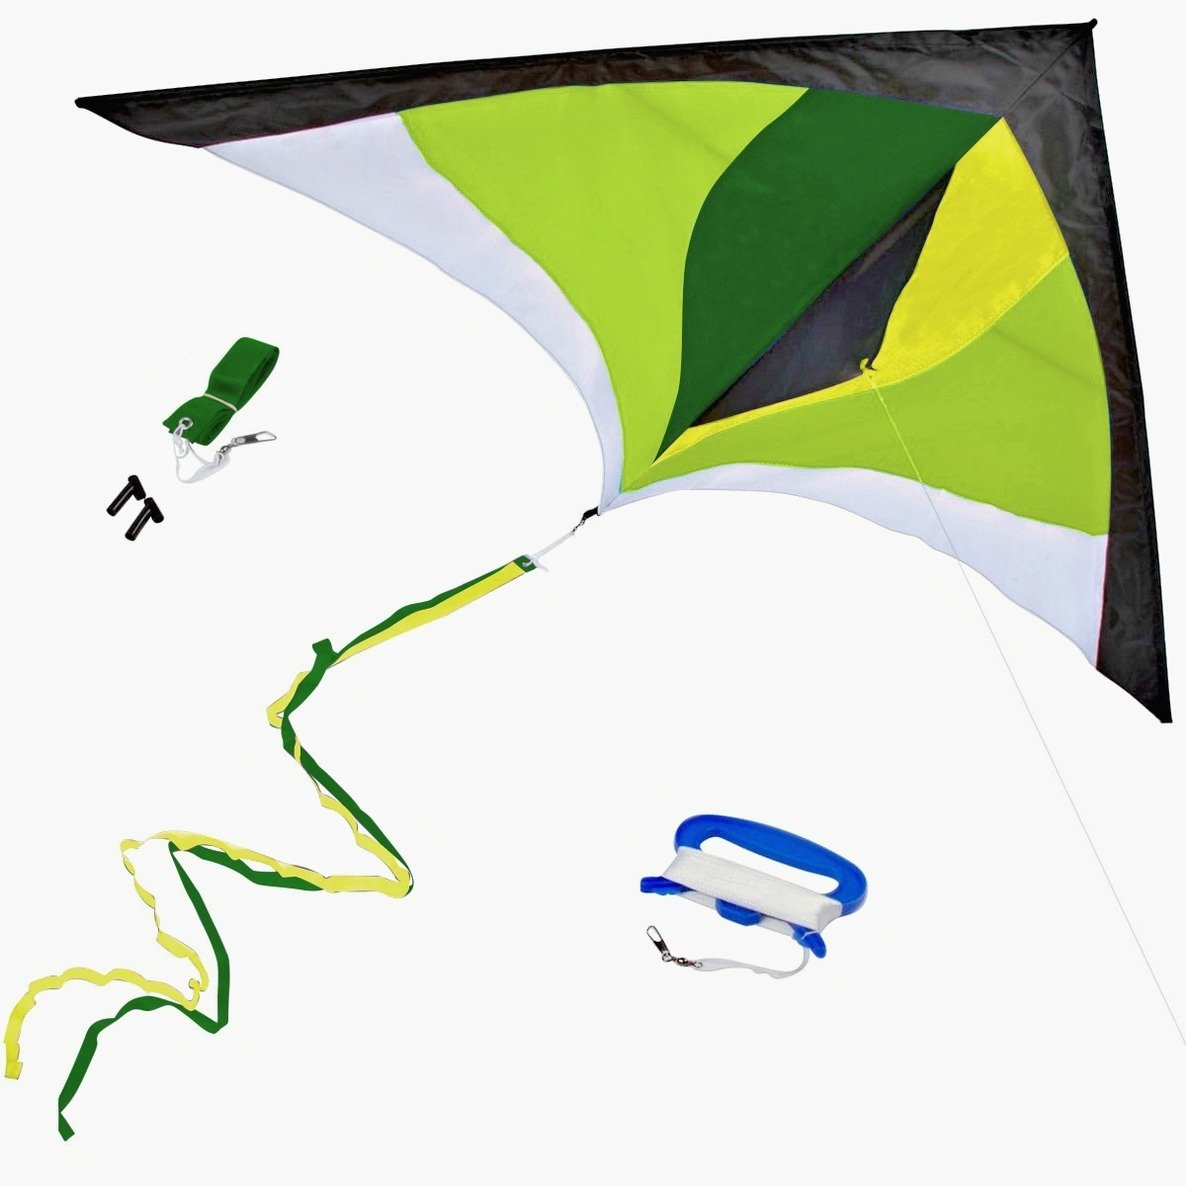 Best Delta Kite, Easy Fly for Kids and Beginners, Single Line w/Tail Ribbons, Stunning Green & Yellow, Materials, Large, Meticulous Design and Testing + Guarantee + Bonuses! by StuffKidsLove